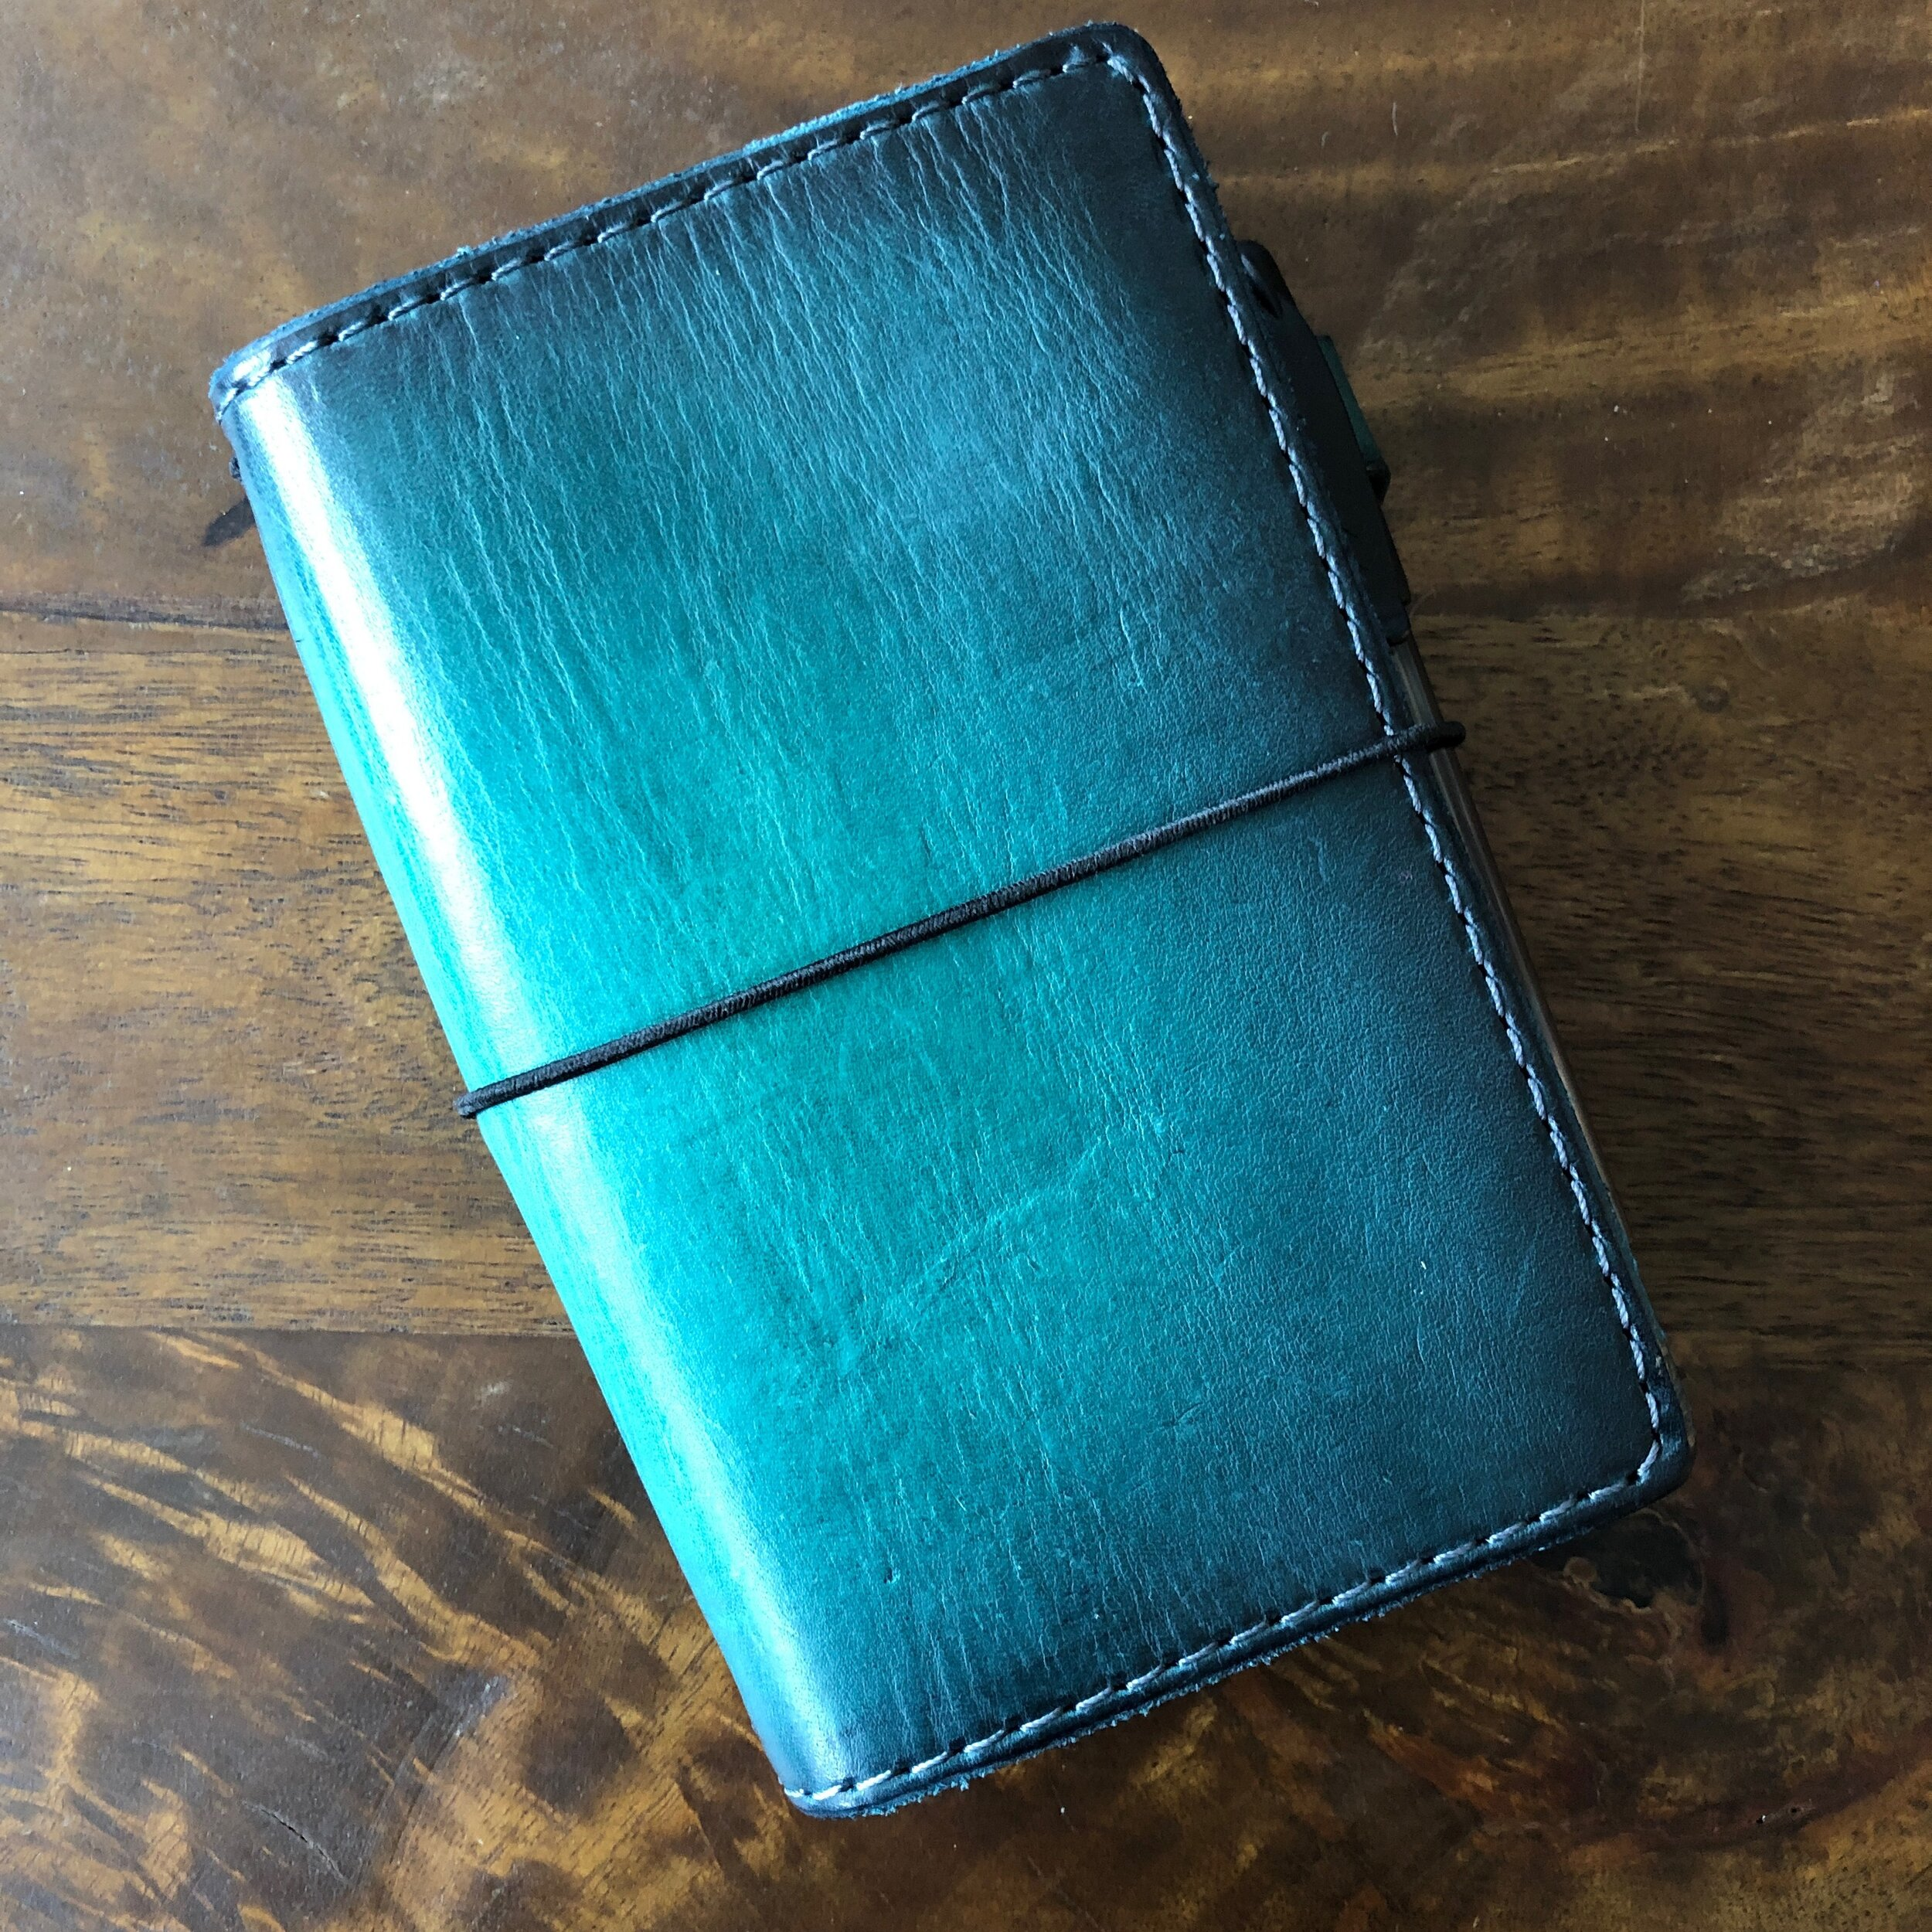 Based on your observations, what inferences can you make about the human, natural, and capital resources needed to make this journal? Hint: It is made of leather.